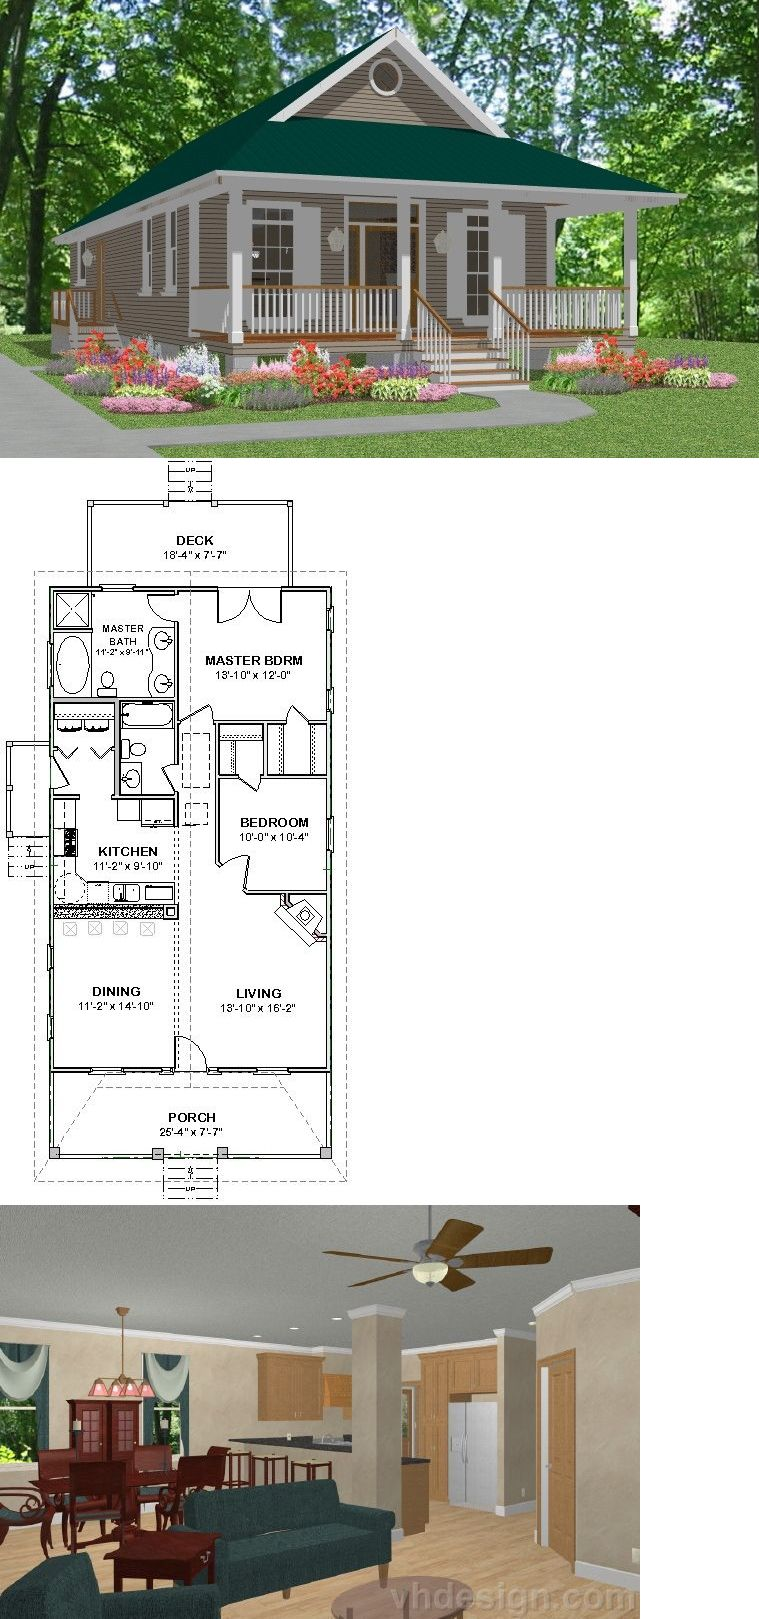 Building Plans And Blueprints 42130 Affordable House Small Home 2 Bedroom 1170 Sf Pdf It Now Only 39 99 On Ebay